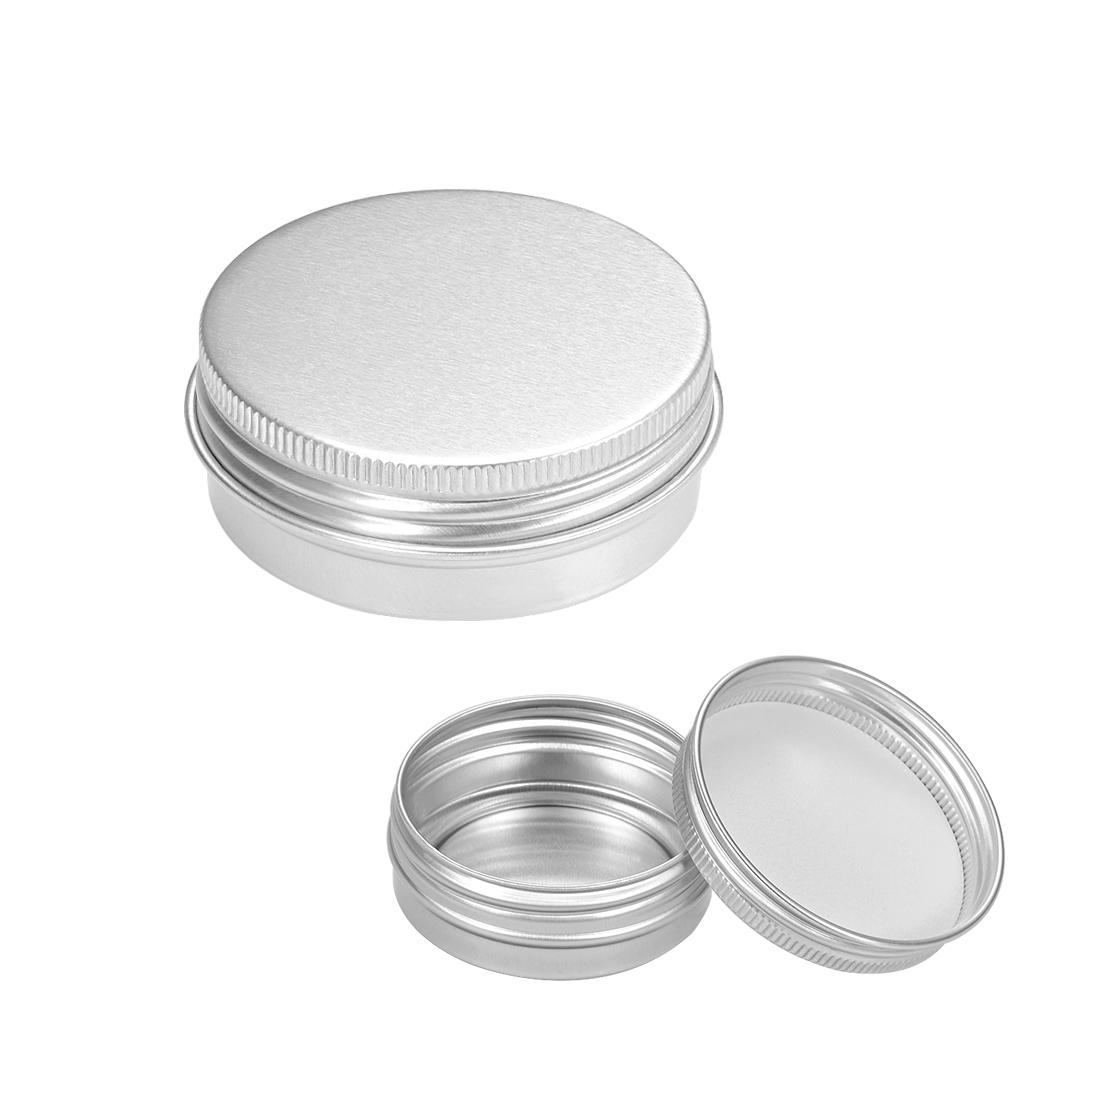 1 oz Round Aluminum Cans Tin Can Screw Top Metal Lid Containers, 30ml, 16pcs